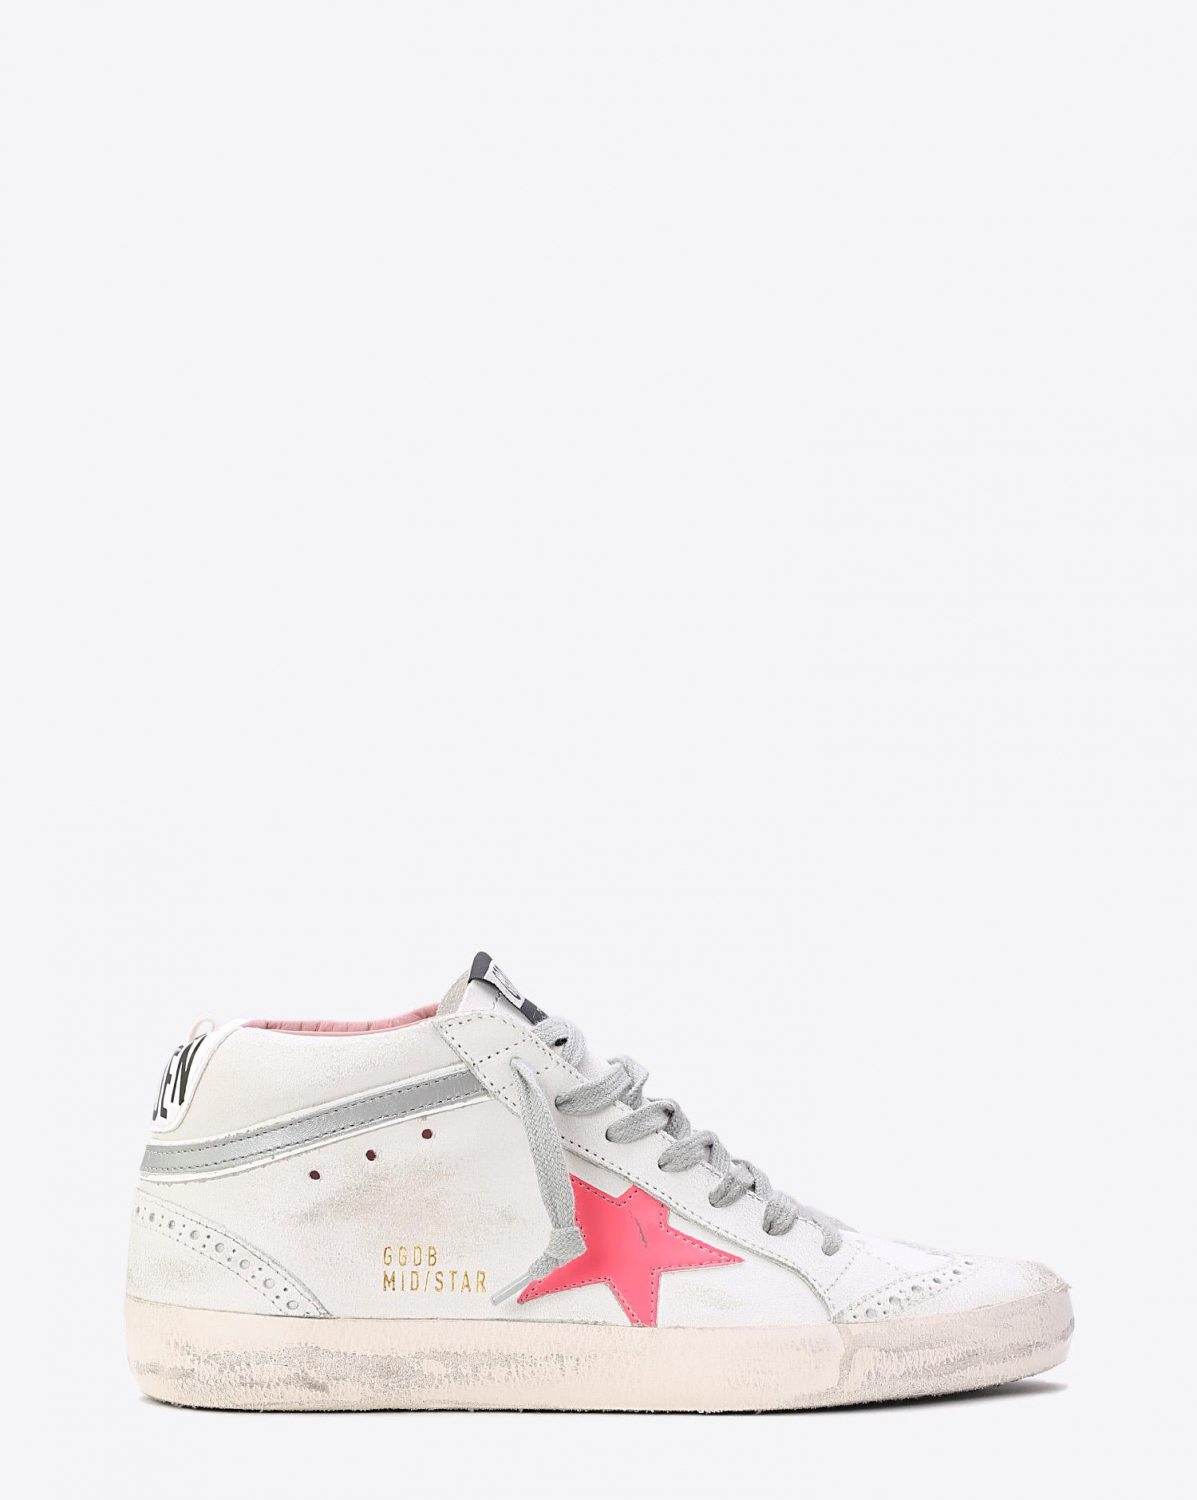 Golden Goose Woman Collection Sneakers Mid Star White Used Pink Patent